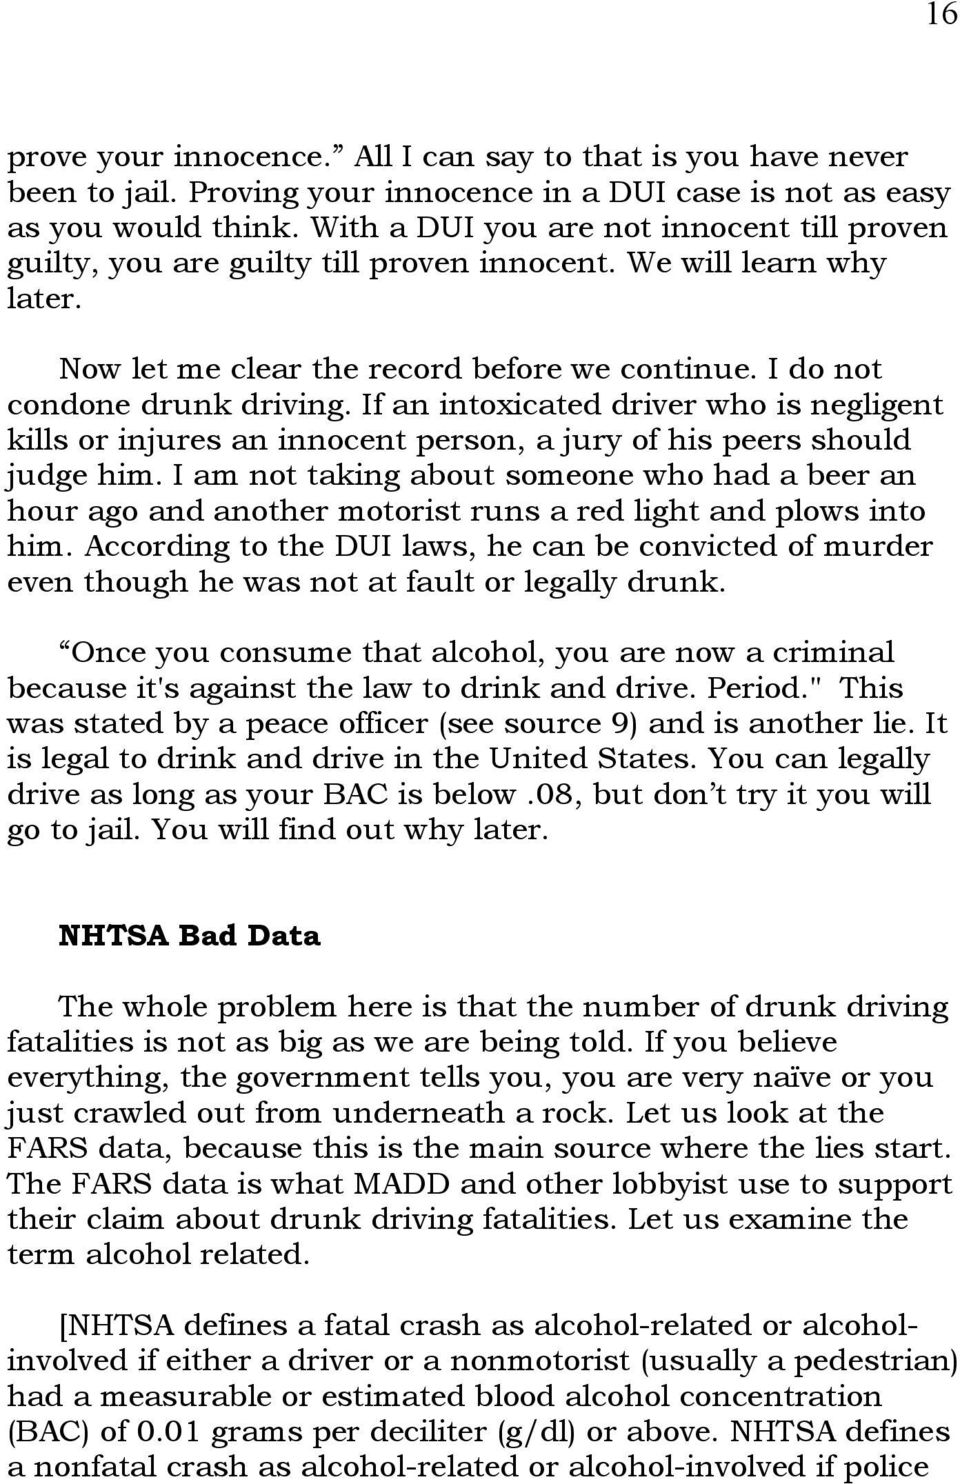 If an intoxicated driver who is negligent kills or injures an innocent person, a jury of his peers should judge him.